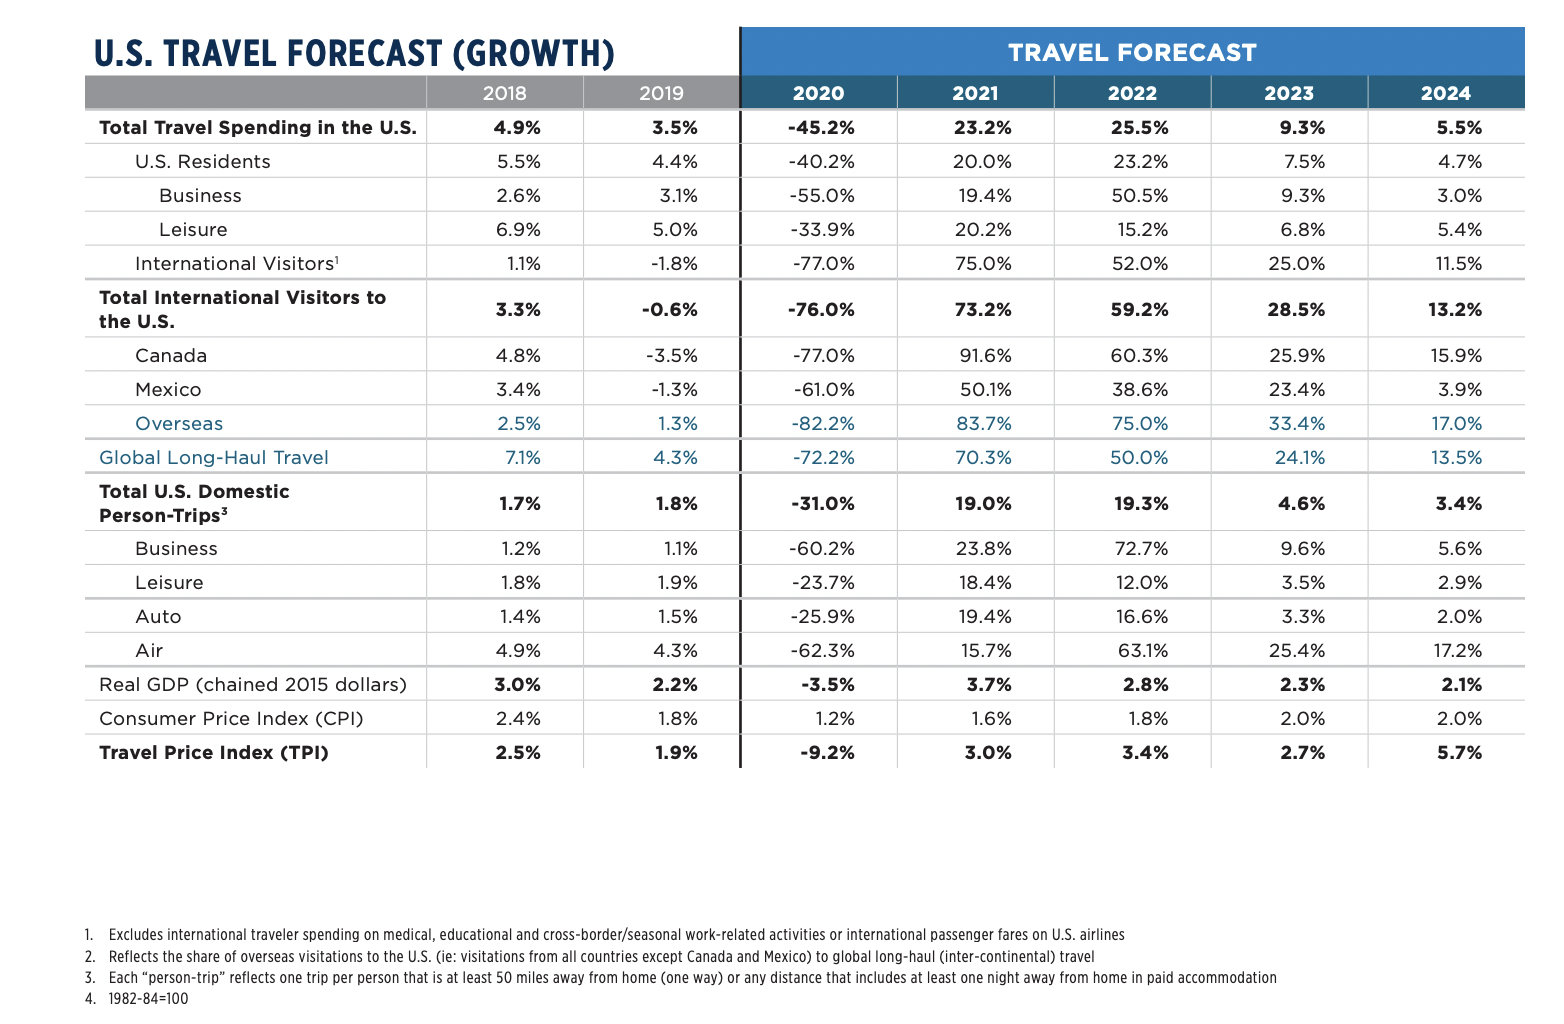 US Travel Forecast Growth